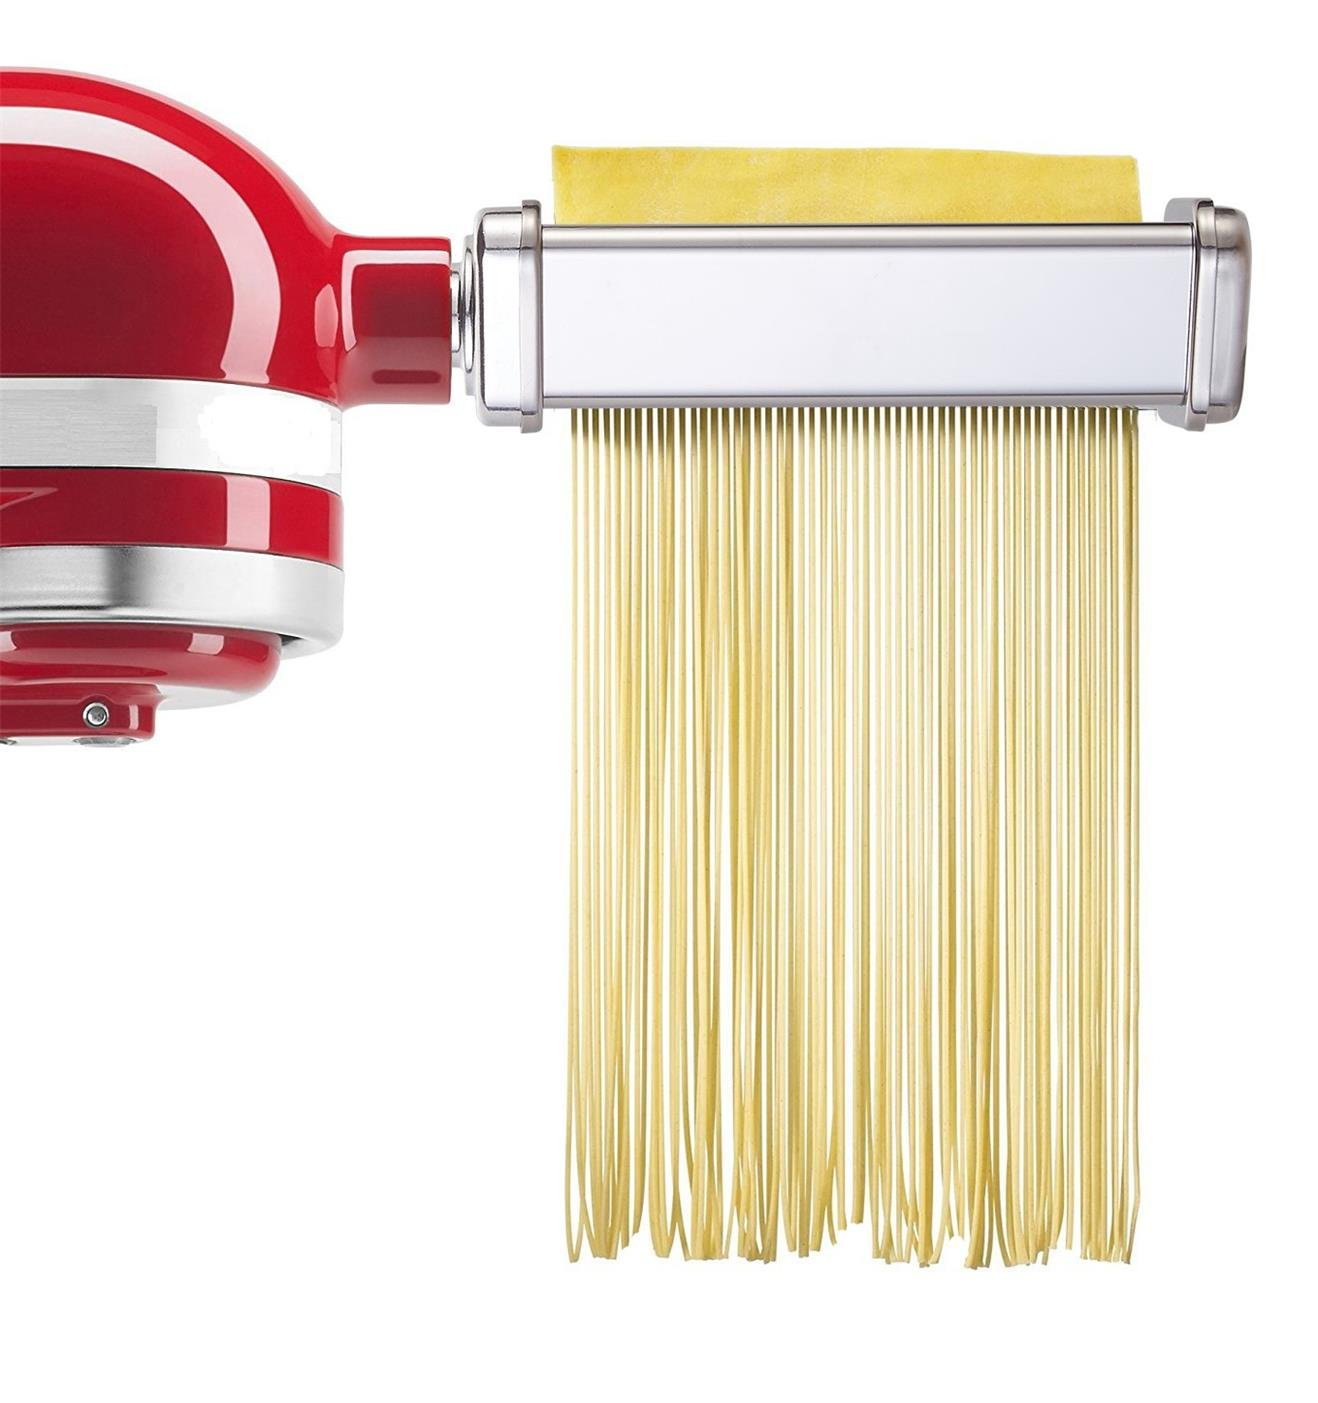 GVODE 3-Piece Pasta Roller and Cutter Set for KitchenAid Stand Mixers,Stainless Steel by GVODE (Image #4)